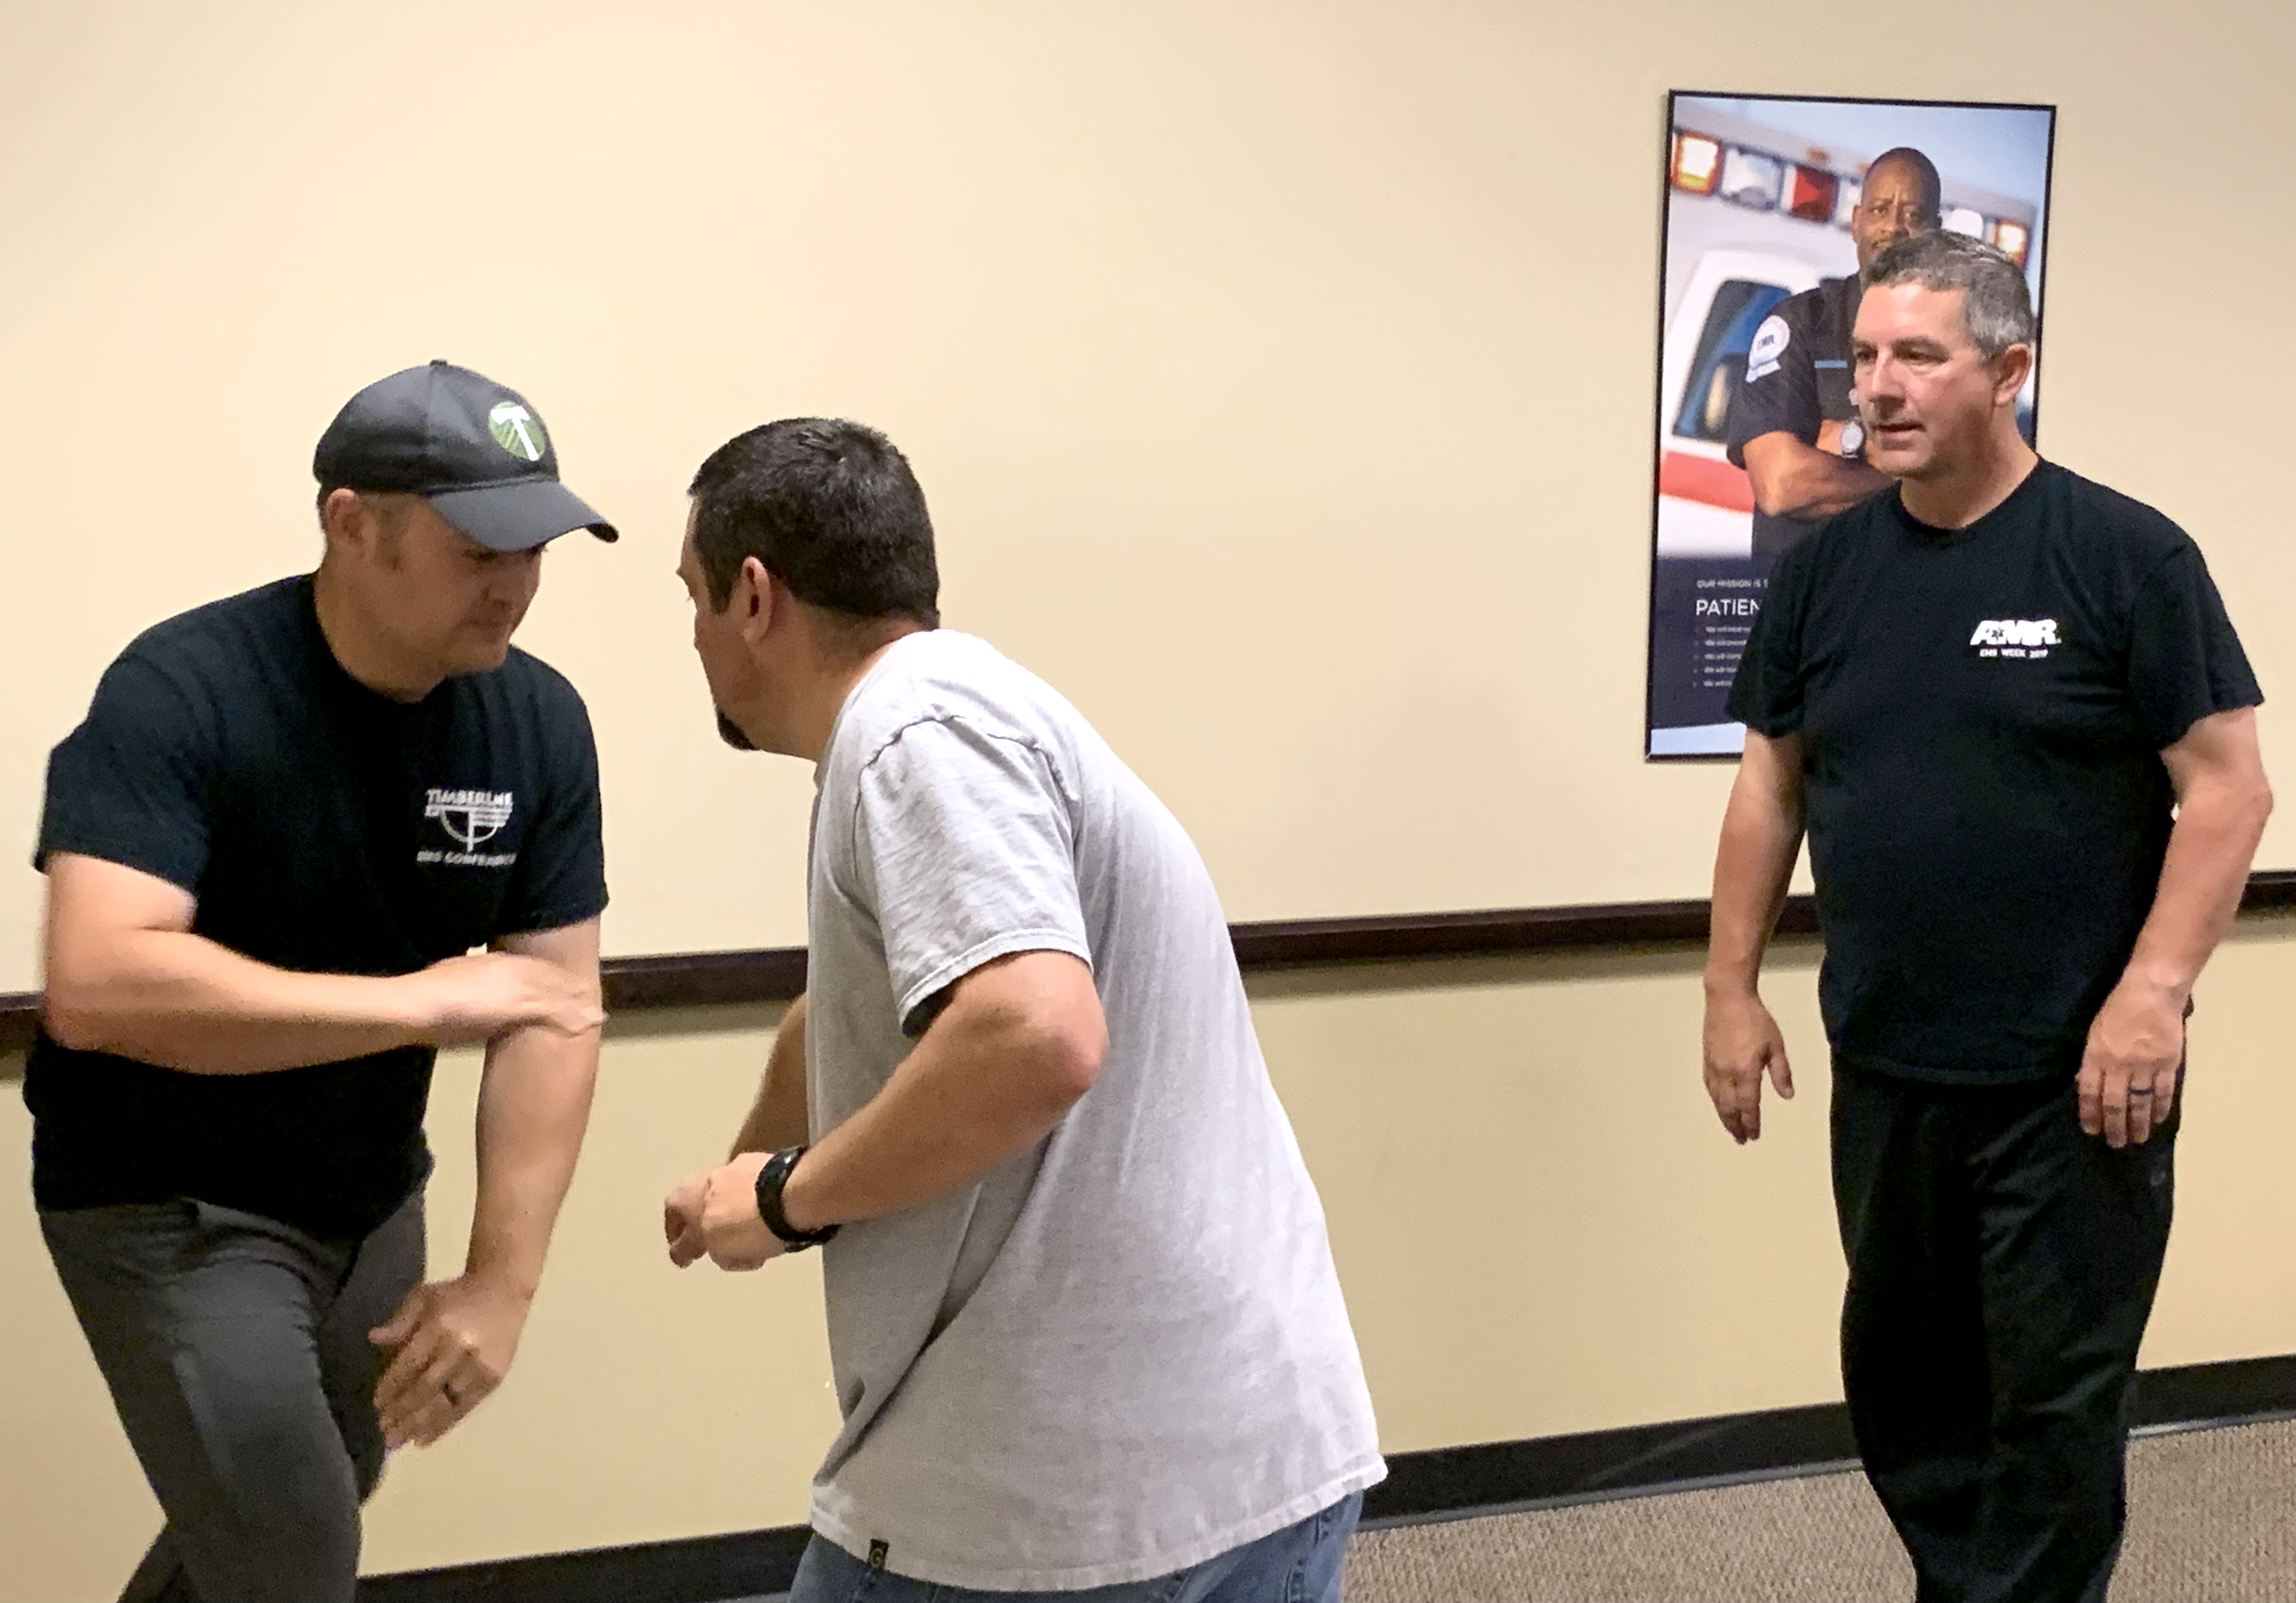 Portland-area paramedics learning self-defense to cope with growing threat from the public